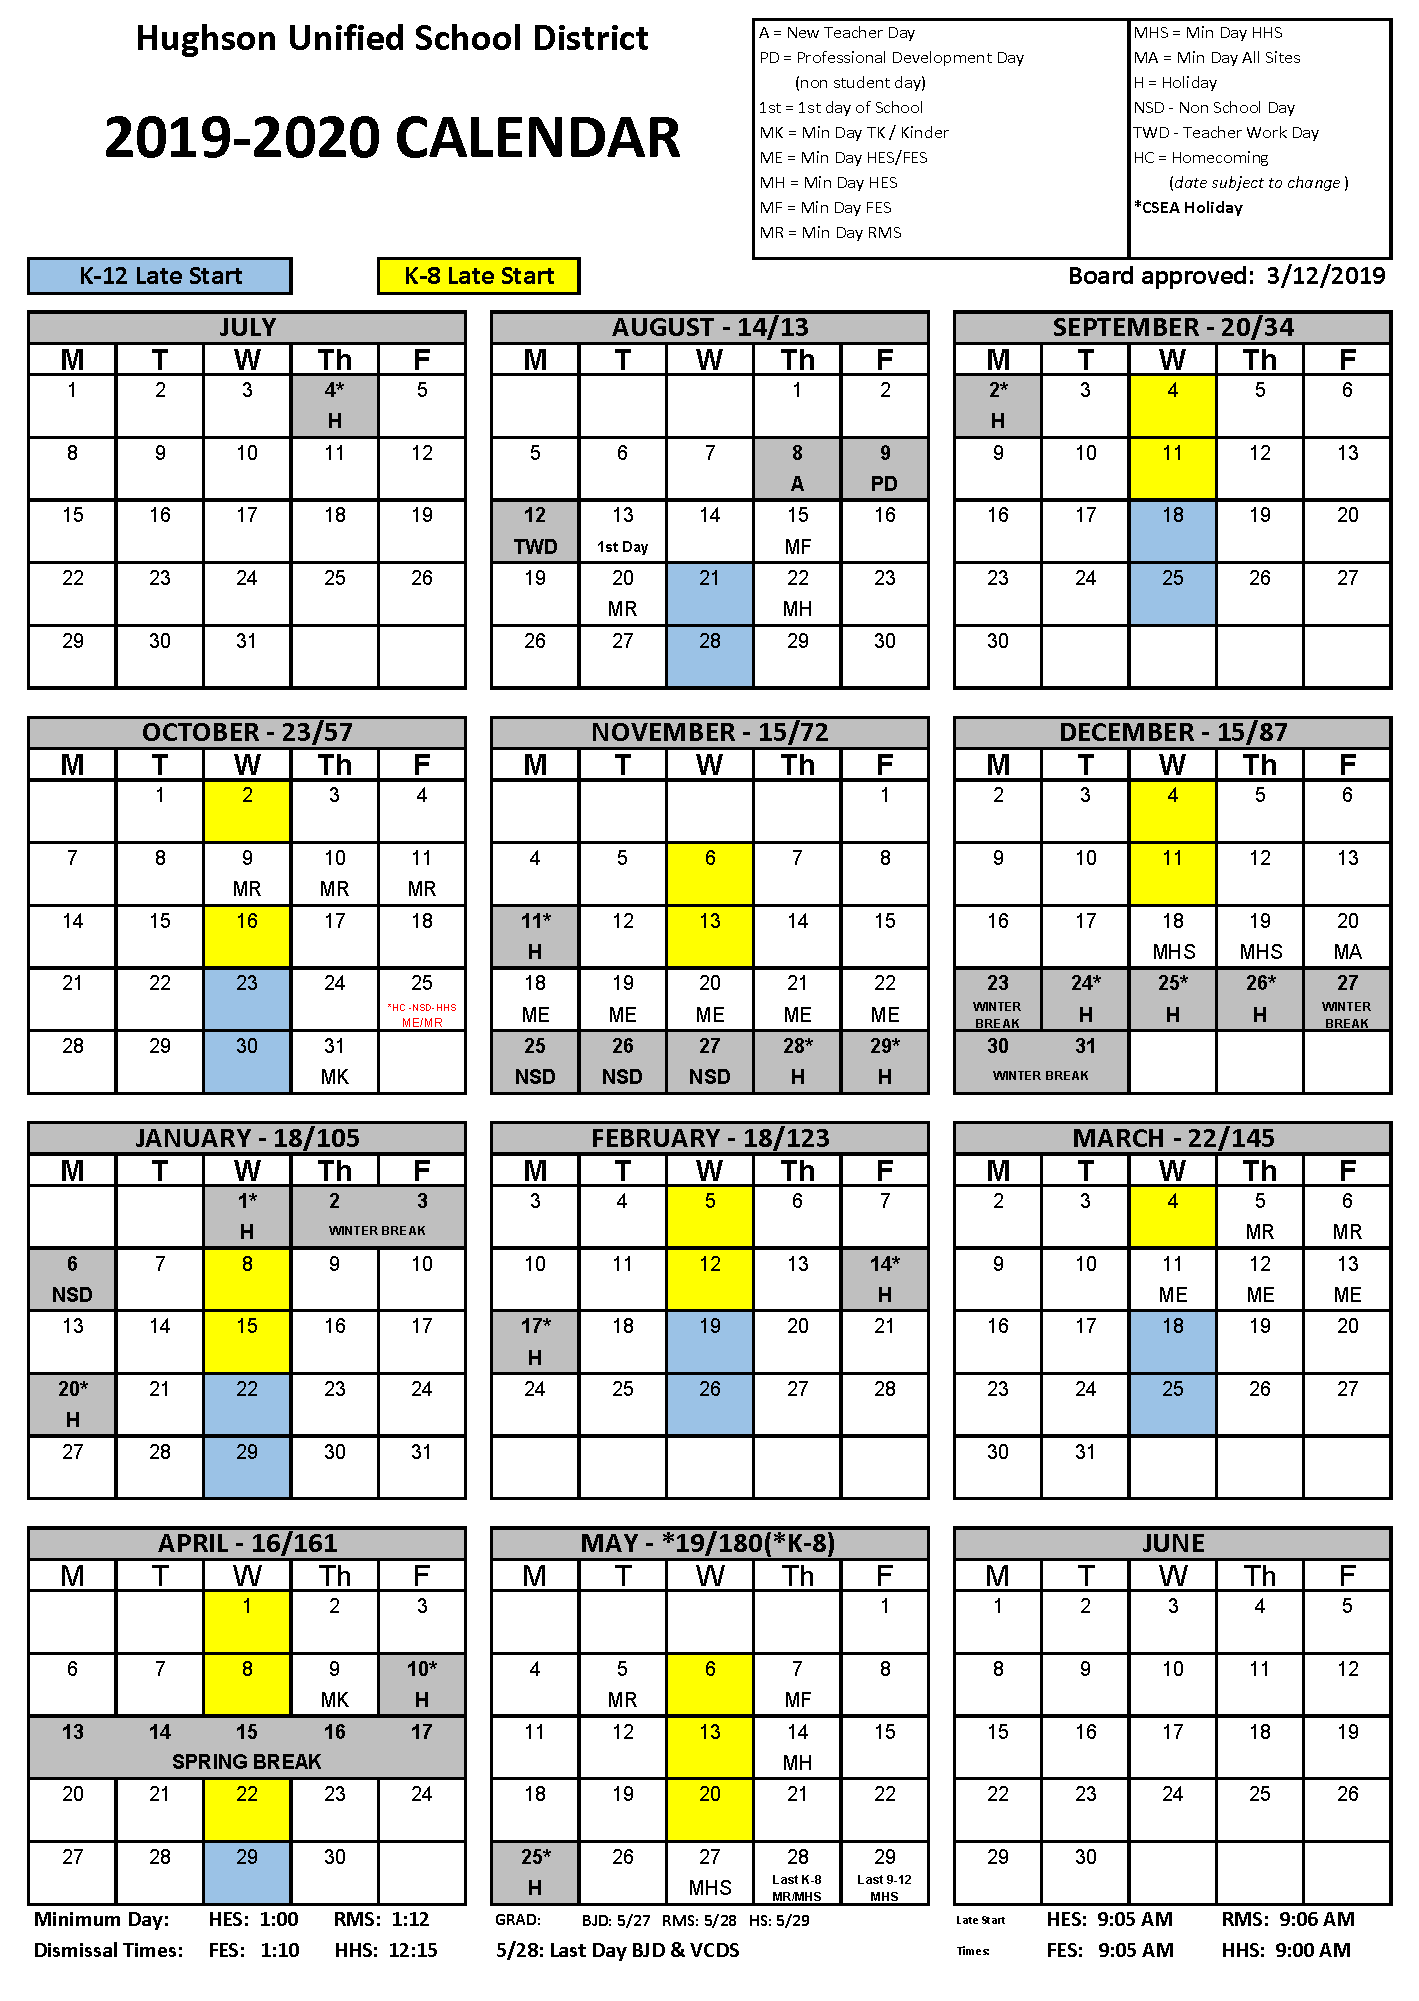 Calendar - Hughson Unified School District throughout Lodi Unified School District Calendar